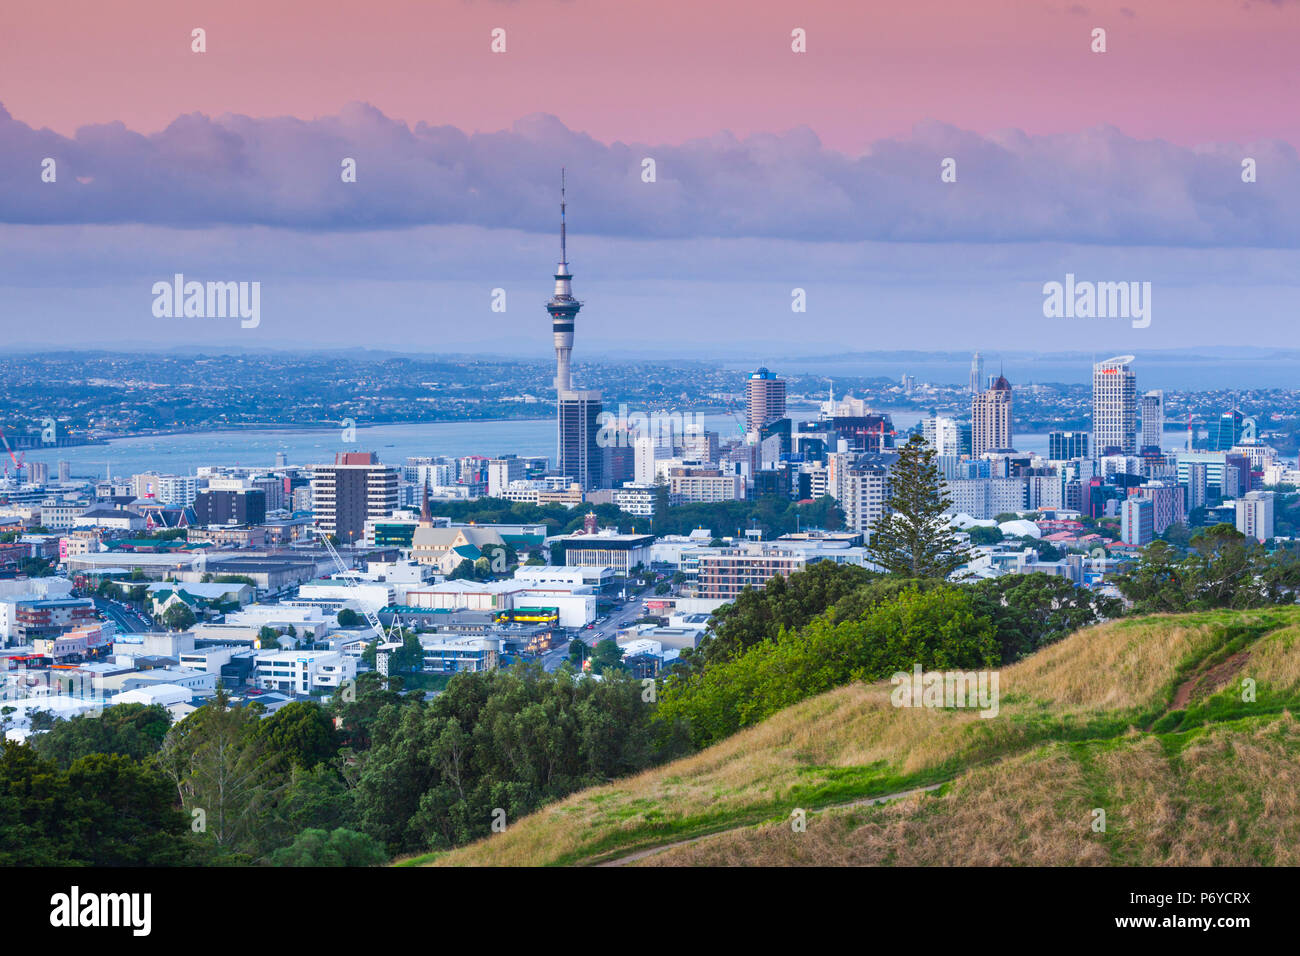 New Zealand, North Island, Auckland, elevated skyline from Mt. Eden volcano cone, dusk - Stock Image